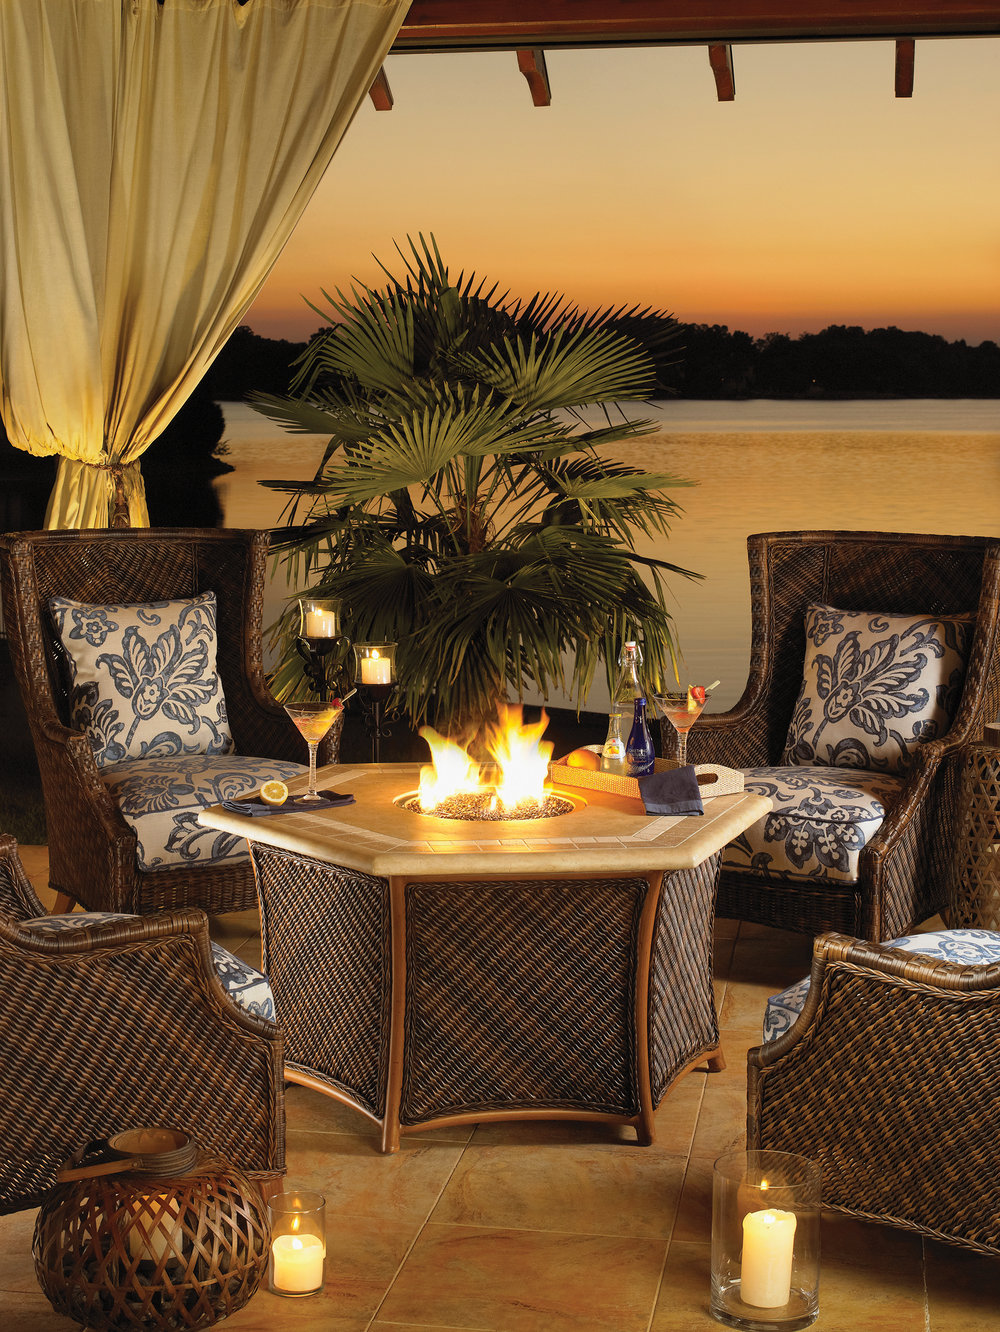 reate a cozy living space on your lanai by incorporating a fire table. In addition to adding ambiance, they can be a focal point in your seating area. If your ceilings are at least ten-feet tall, you can put the fire table under covered spaces.